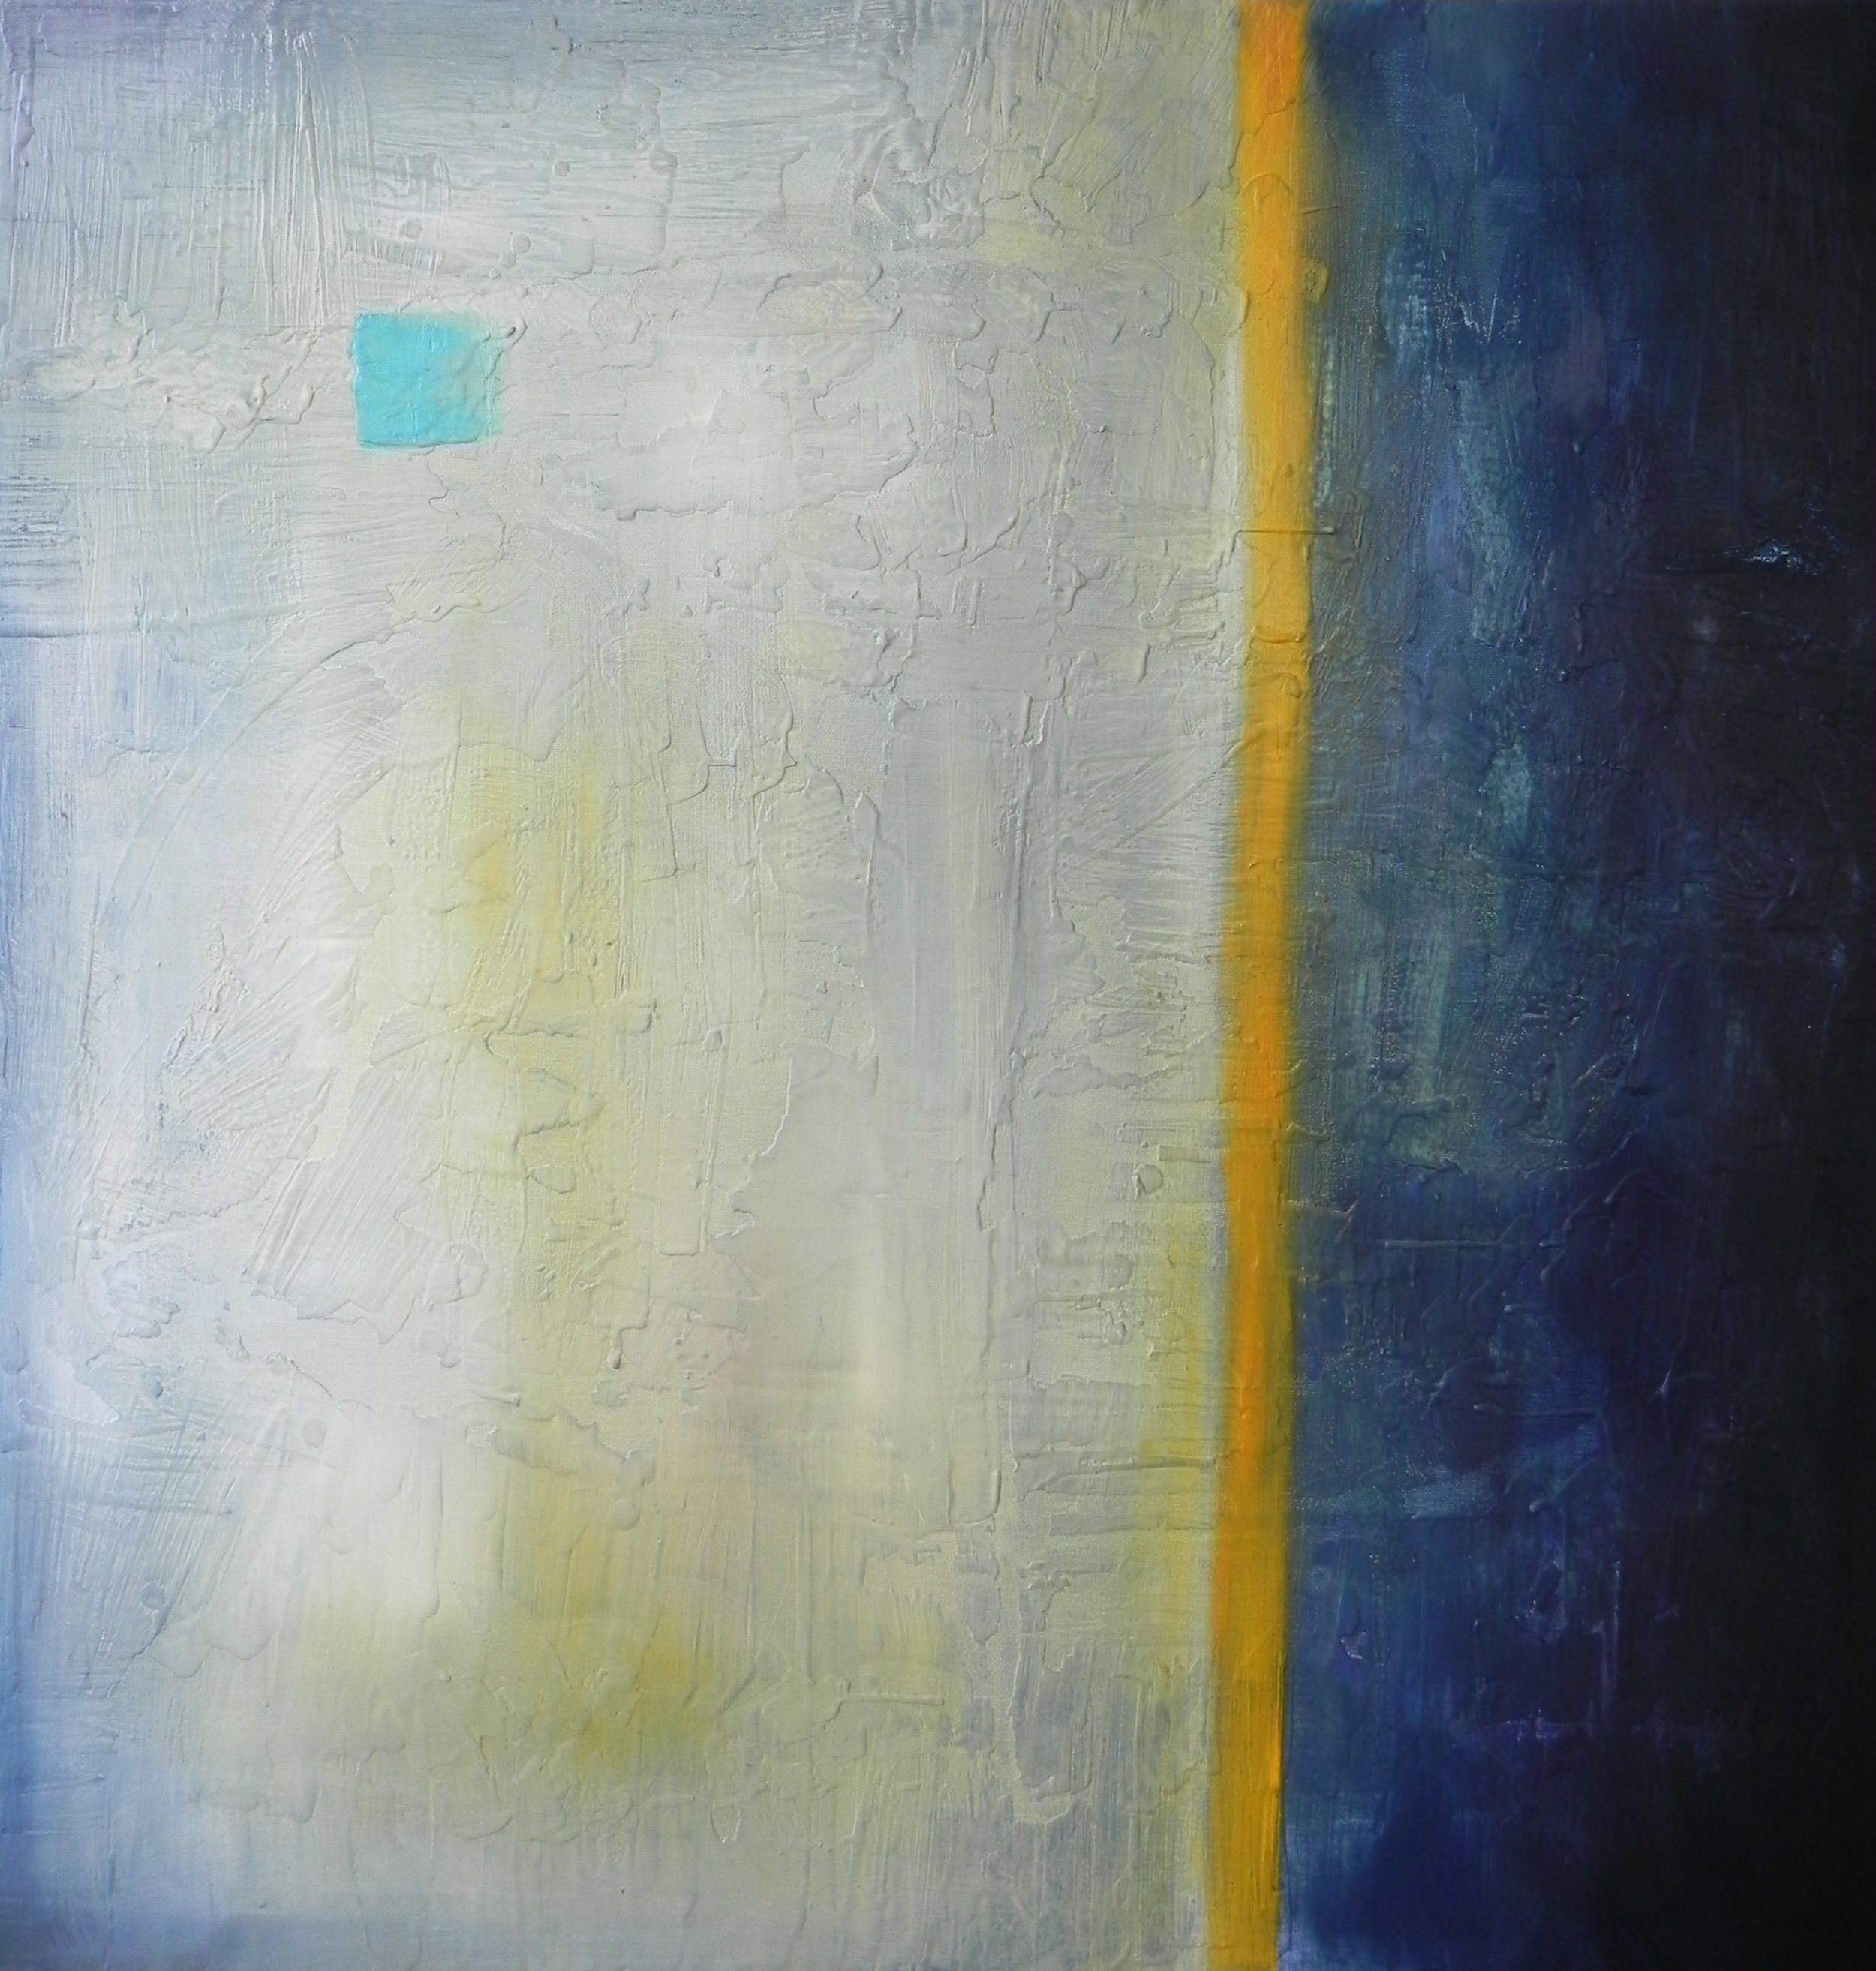 "ISOLATION, 2014. 30"" x 30"". Cradled Wood Panel. Oil and Wax. Copyright © Karen Santos 2014."